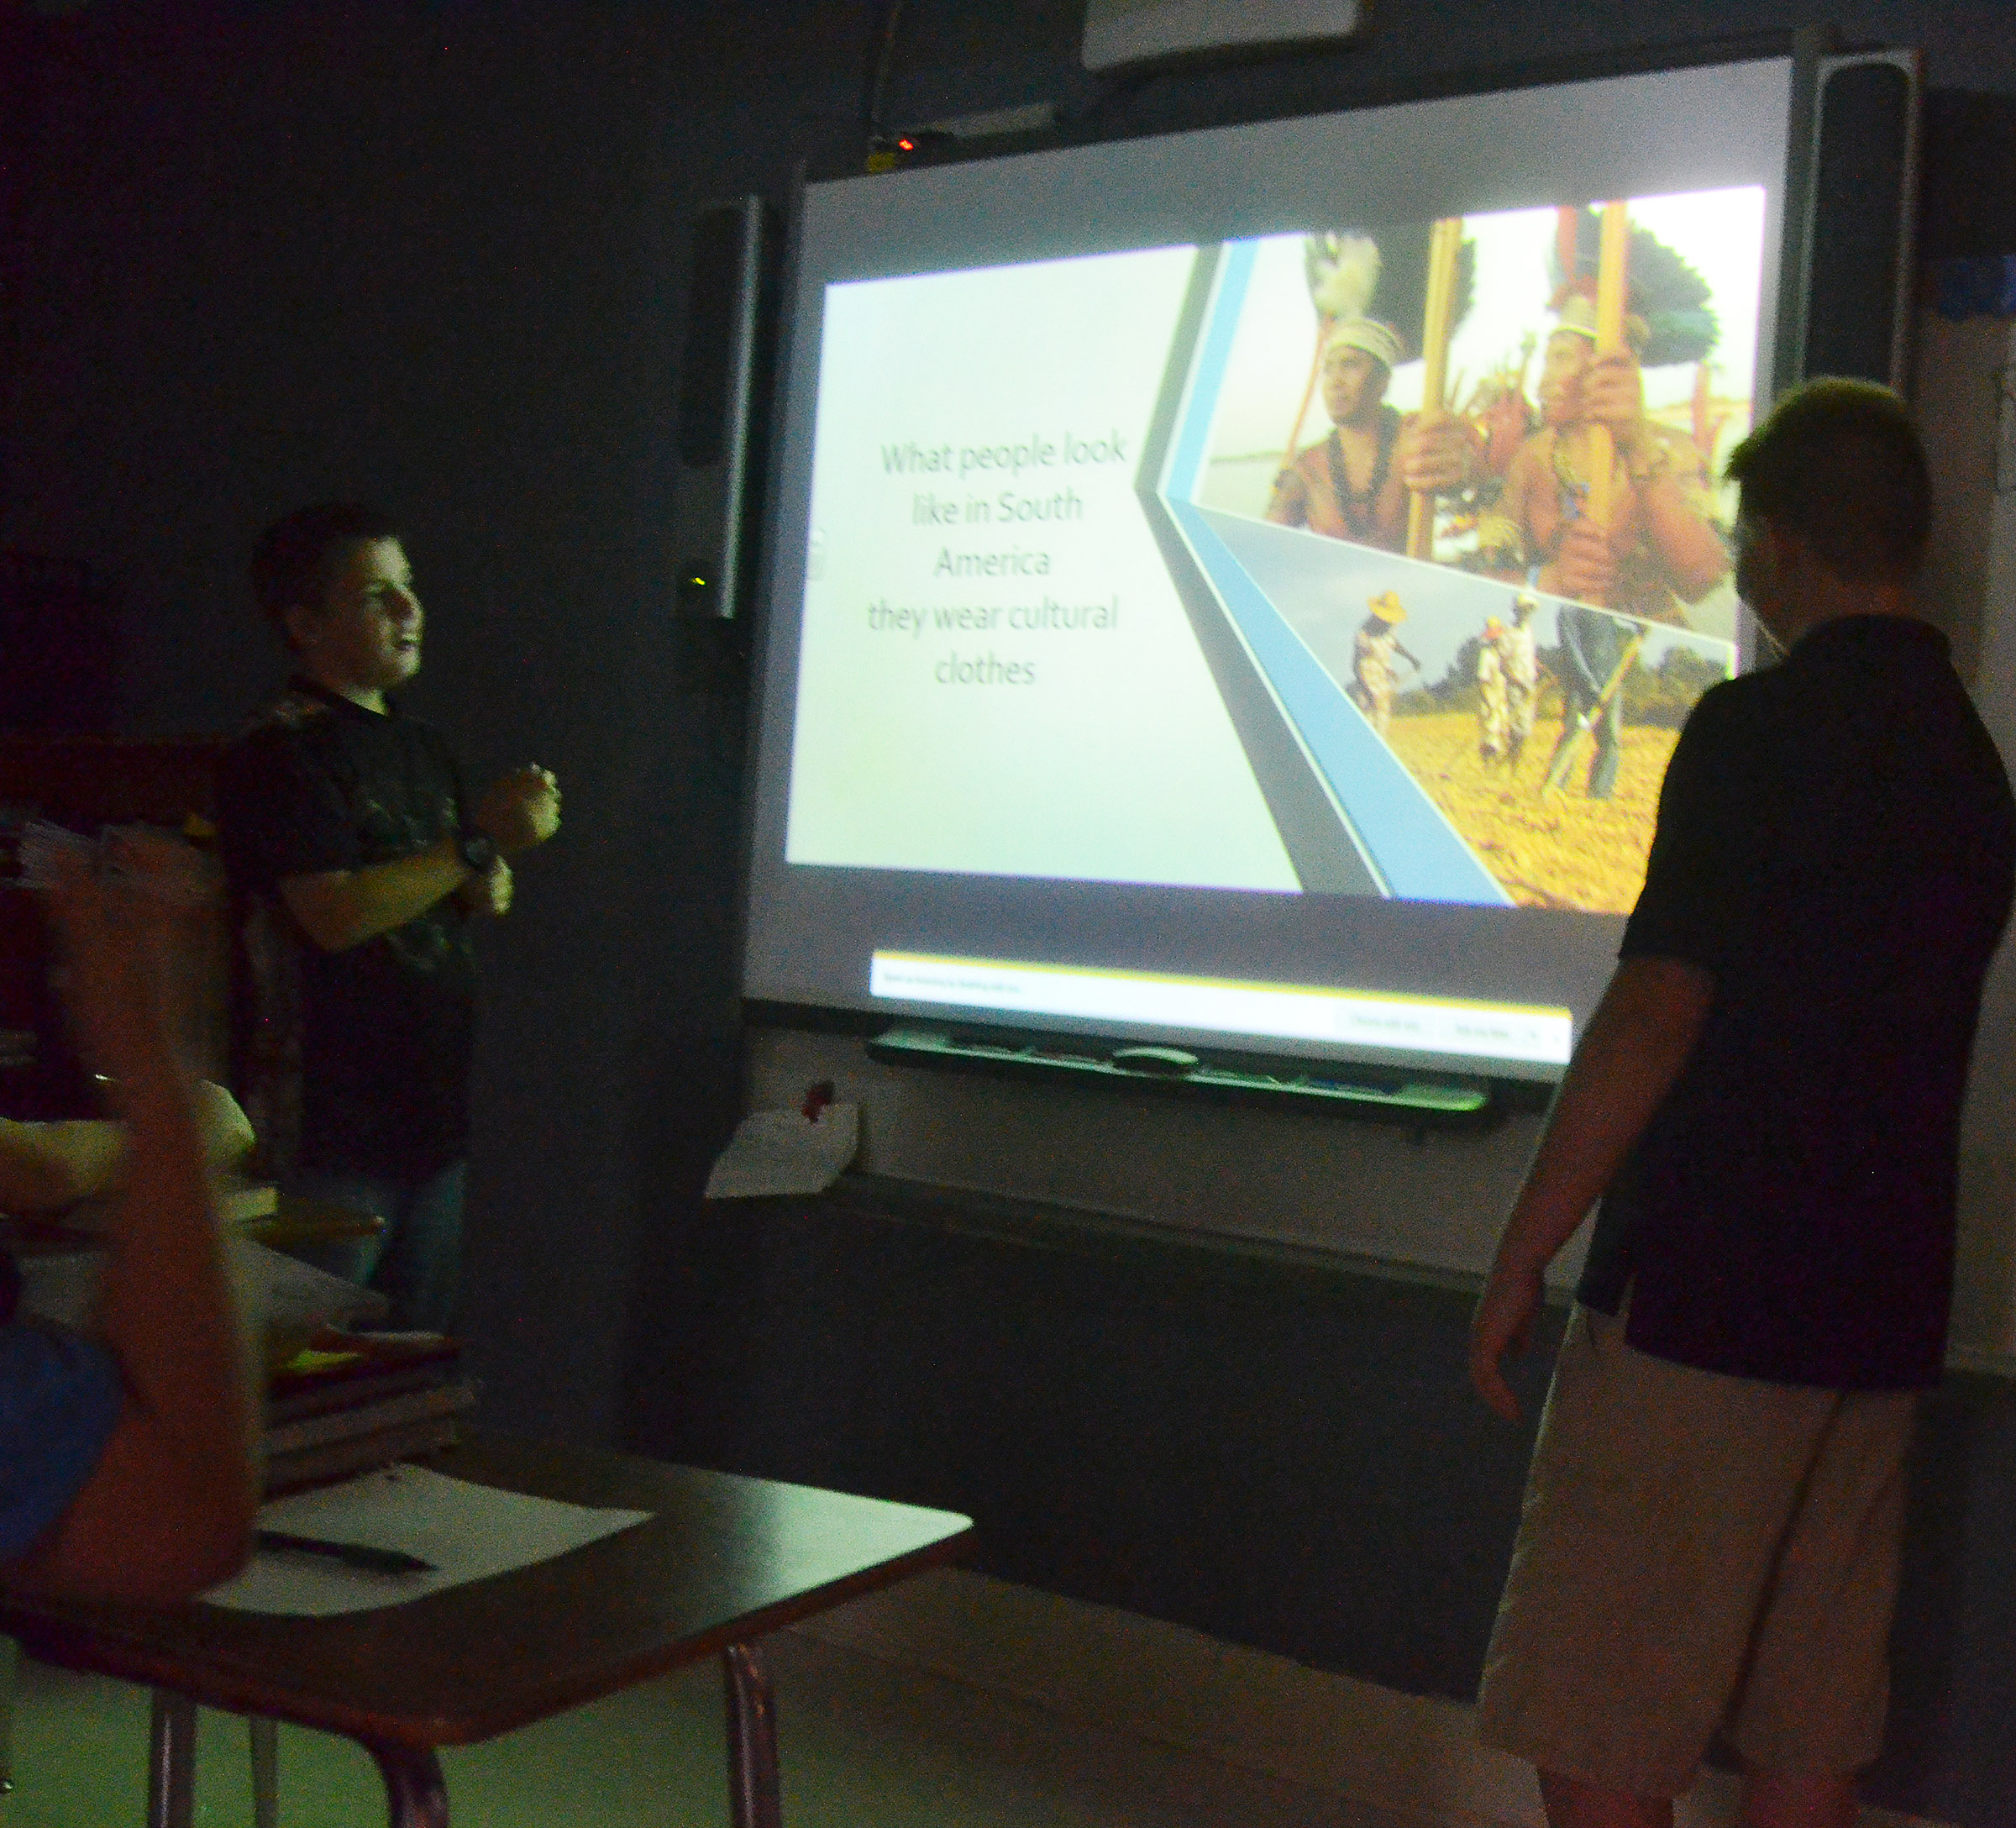 CMS sixth-graders Ashton Davis, at left, and Jesse King talk to their classmates about South America.